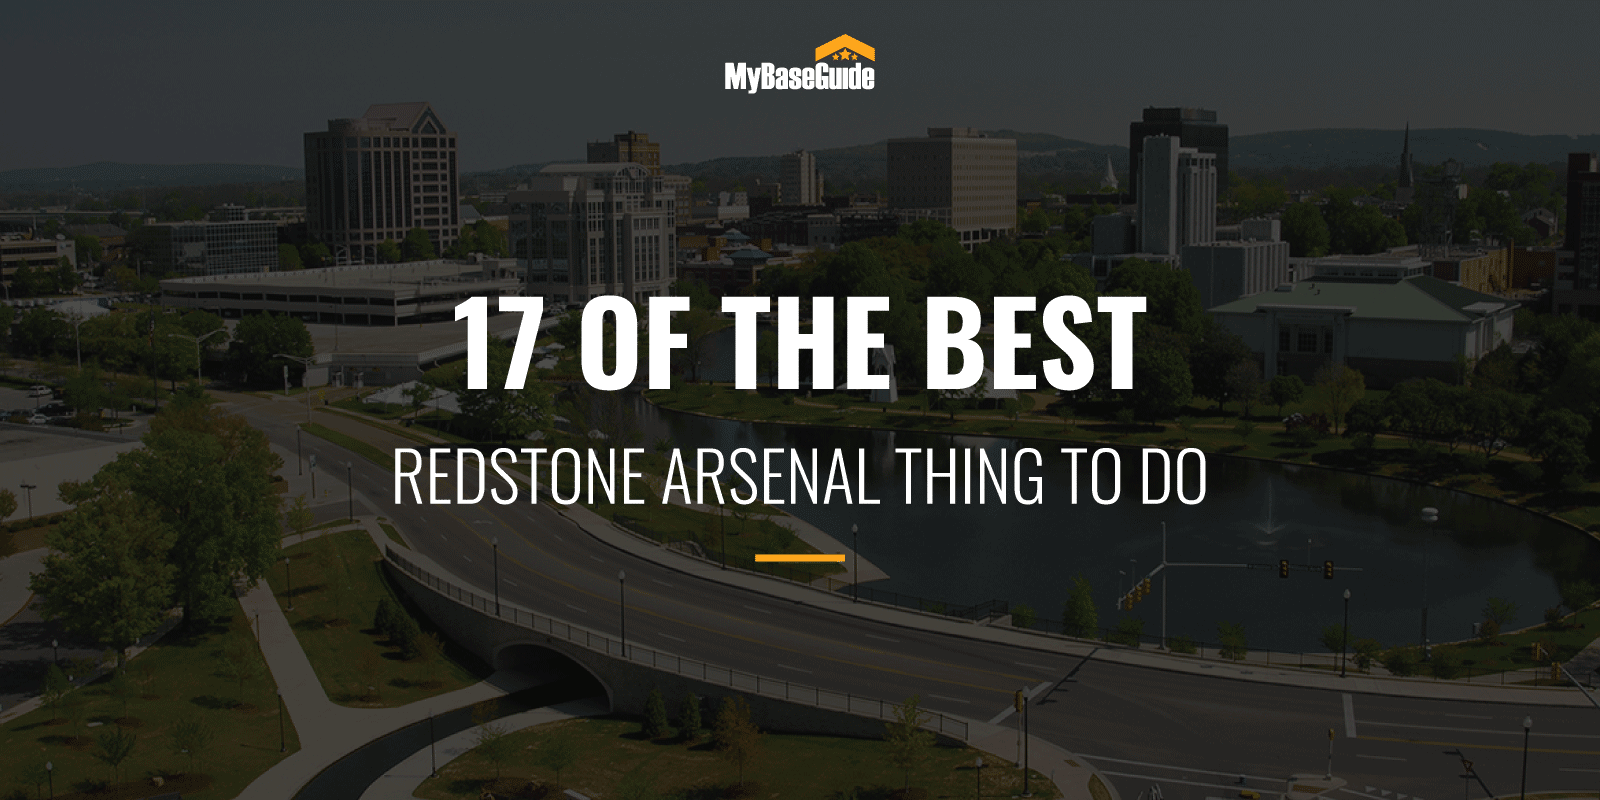 17 Of the Best Redstone Arsenal Things to Do